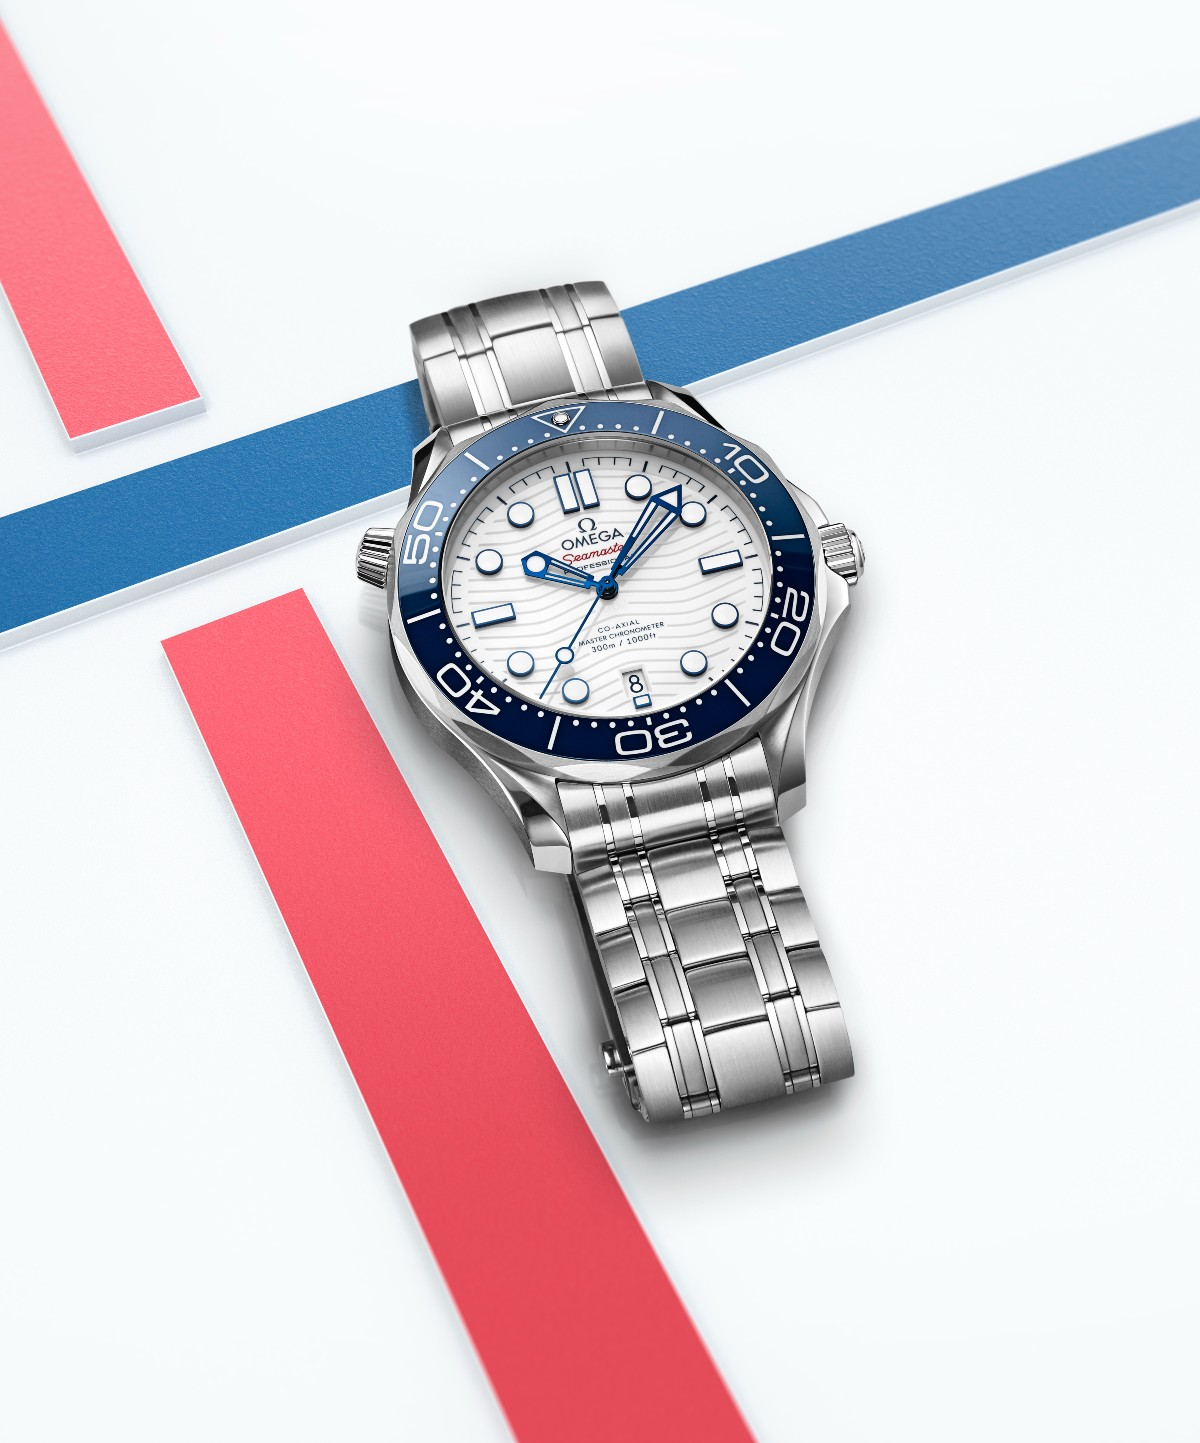 Omega Celebrates The Olympics With The Seamaster Diver 300M Tokyo 2020